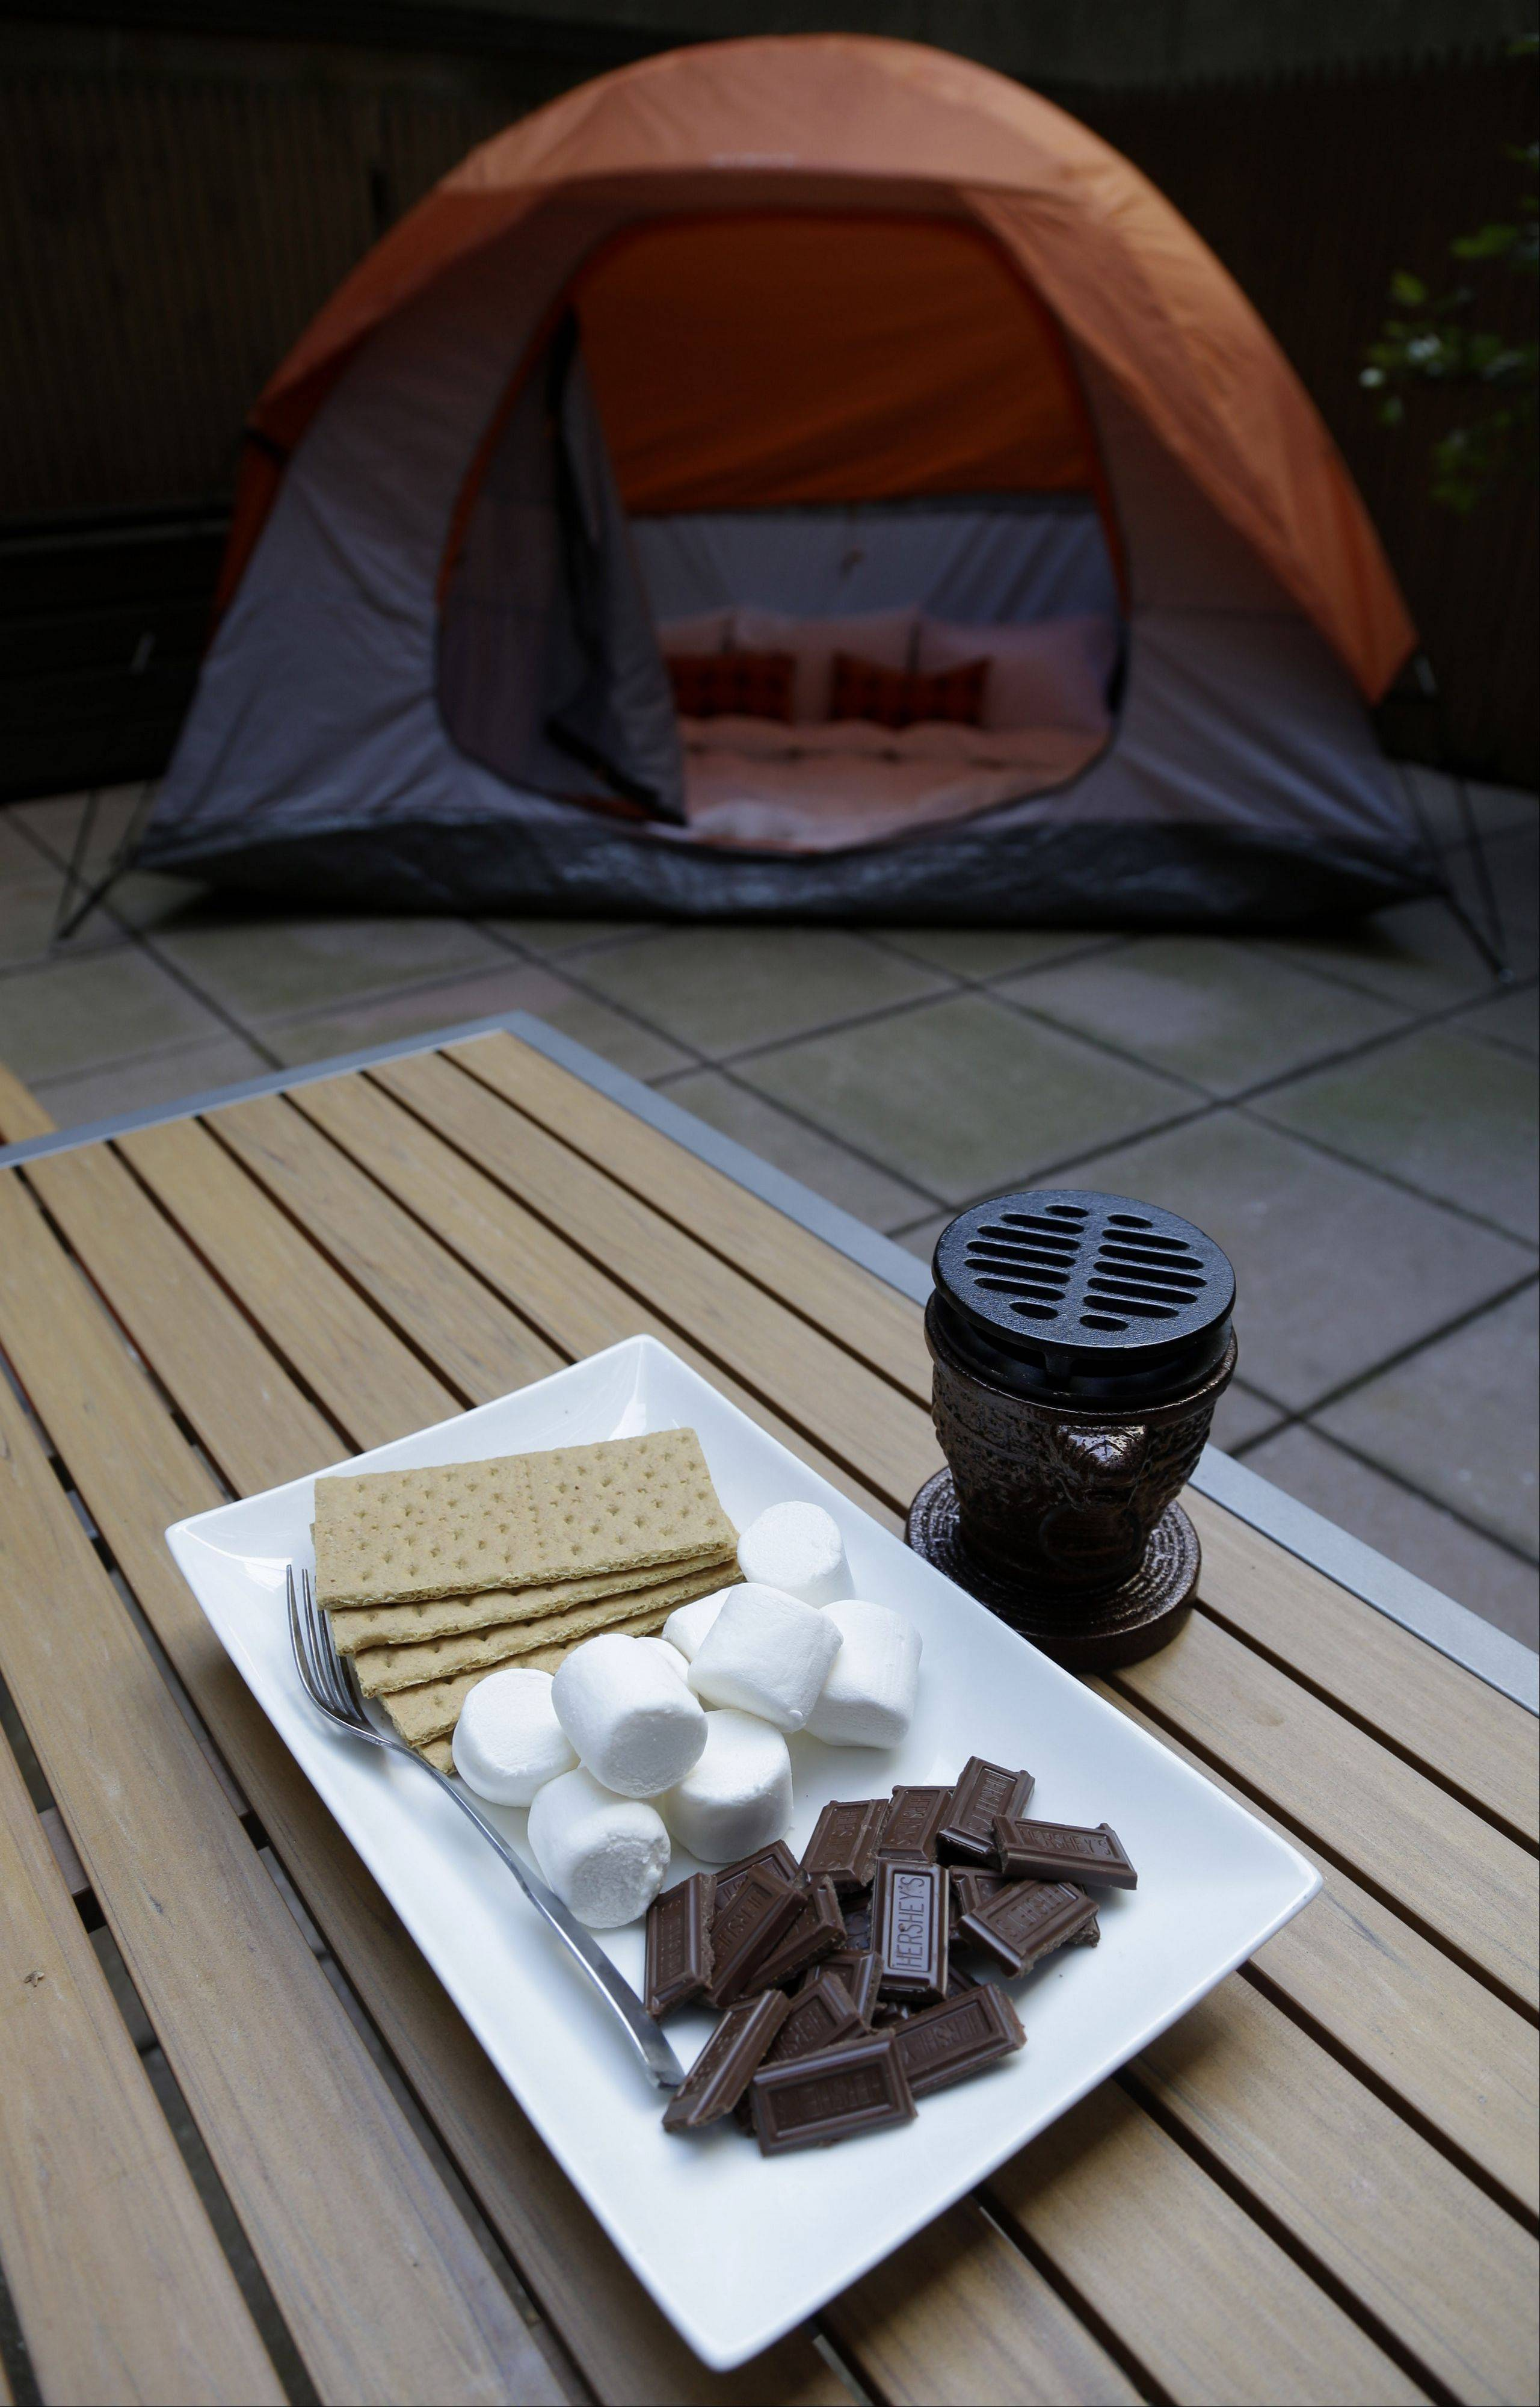 Along with a tent on your patio, smores are an option at the Affina Hotel in New York.